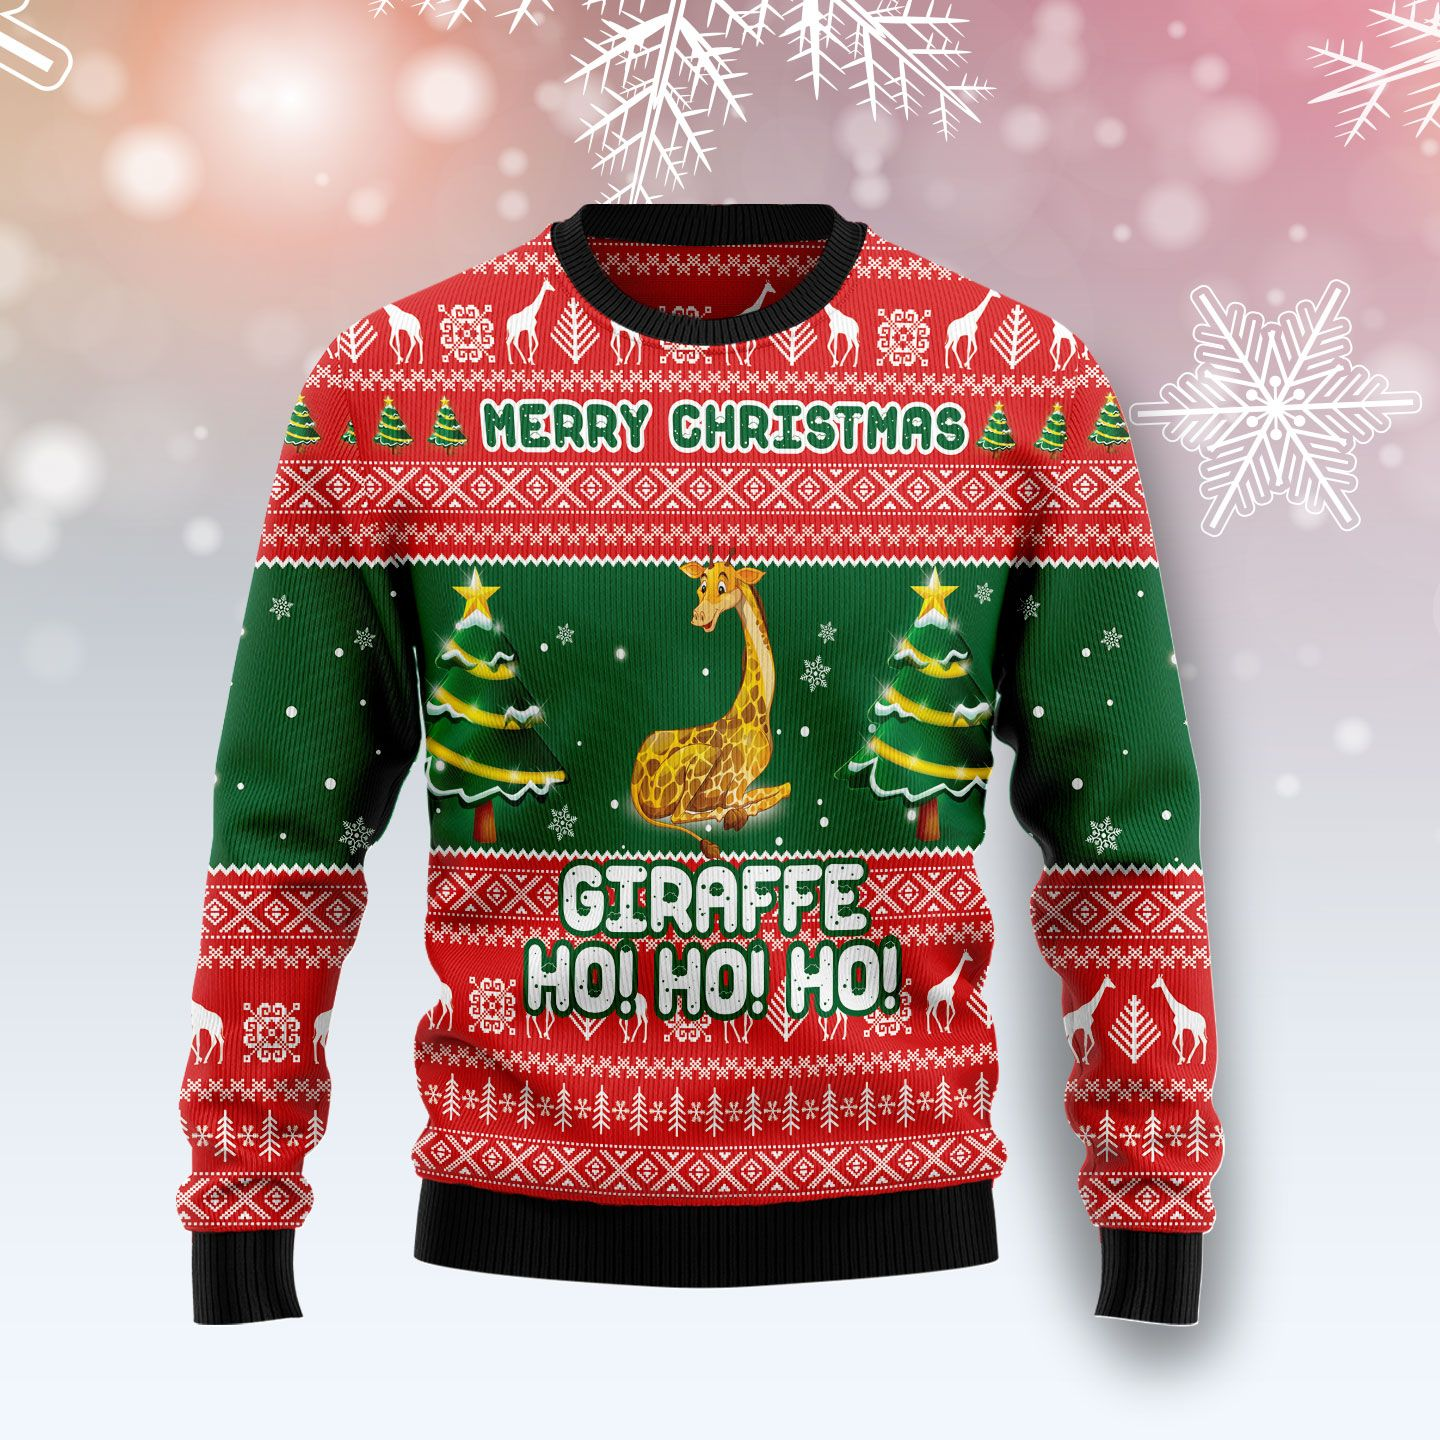 Giraffe Ho Ho Ho Wool Christmas Sweater